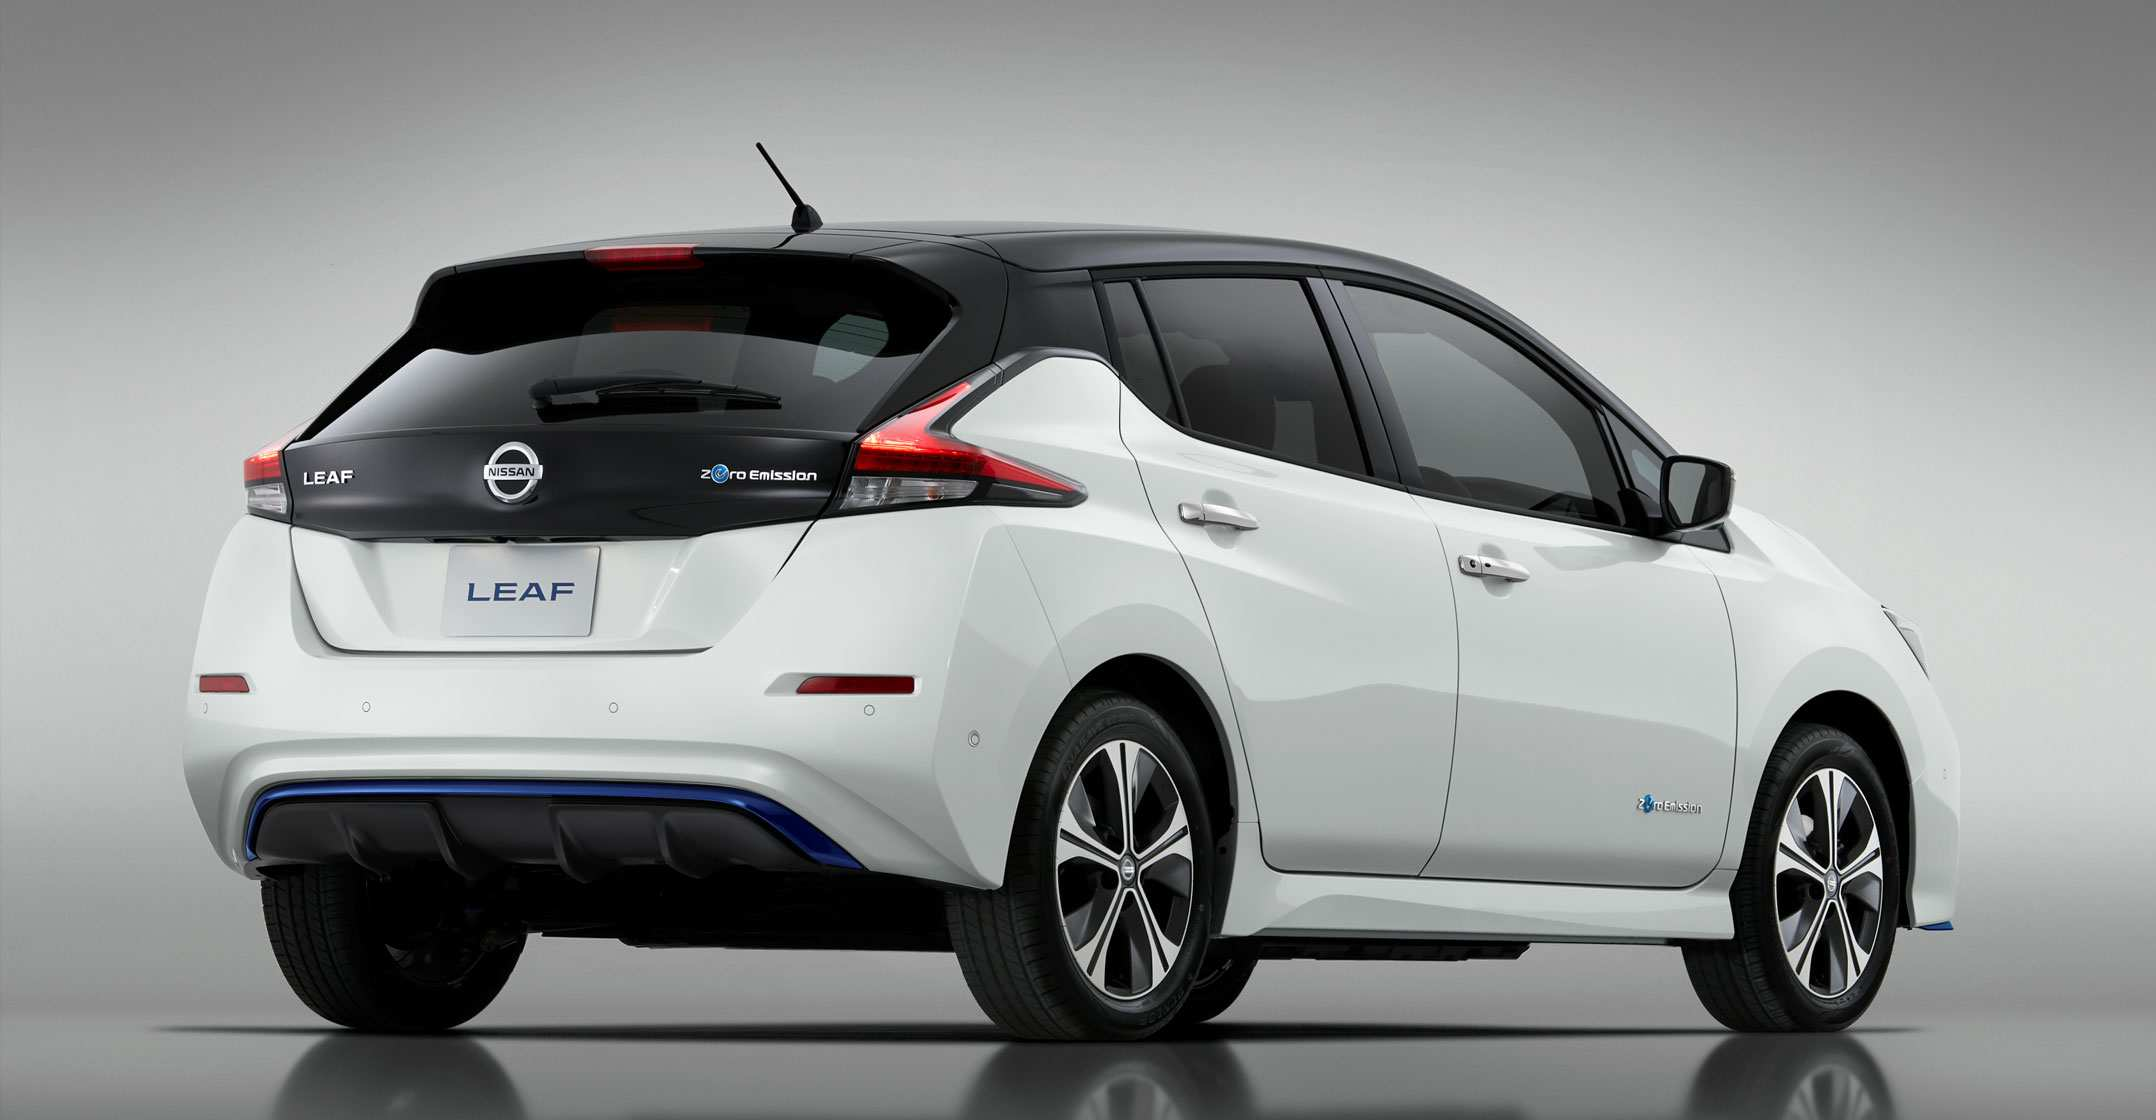 63 Great Nissan Leaf Suv 2020 Pictures with Nissan Leaf Suv 2020